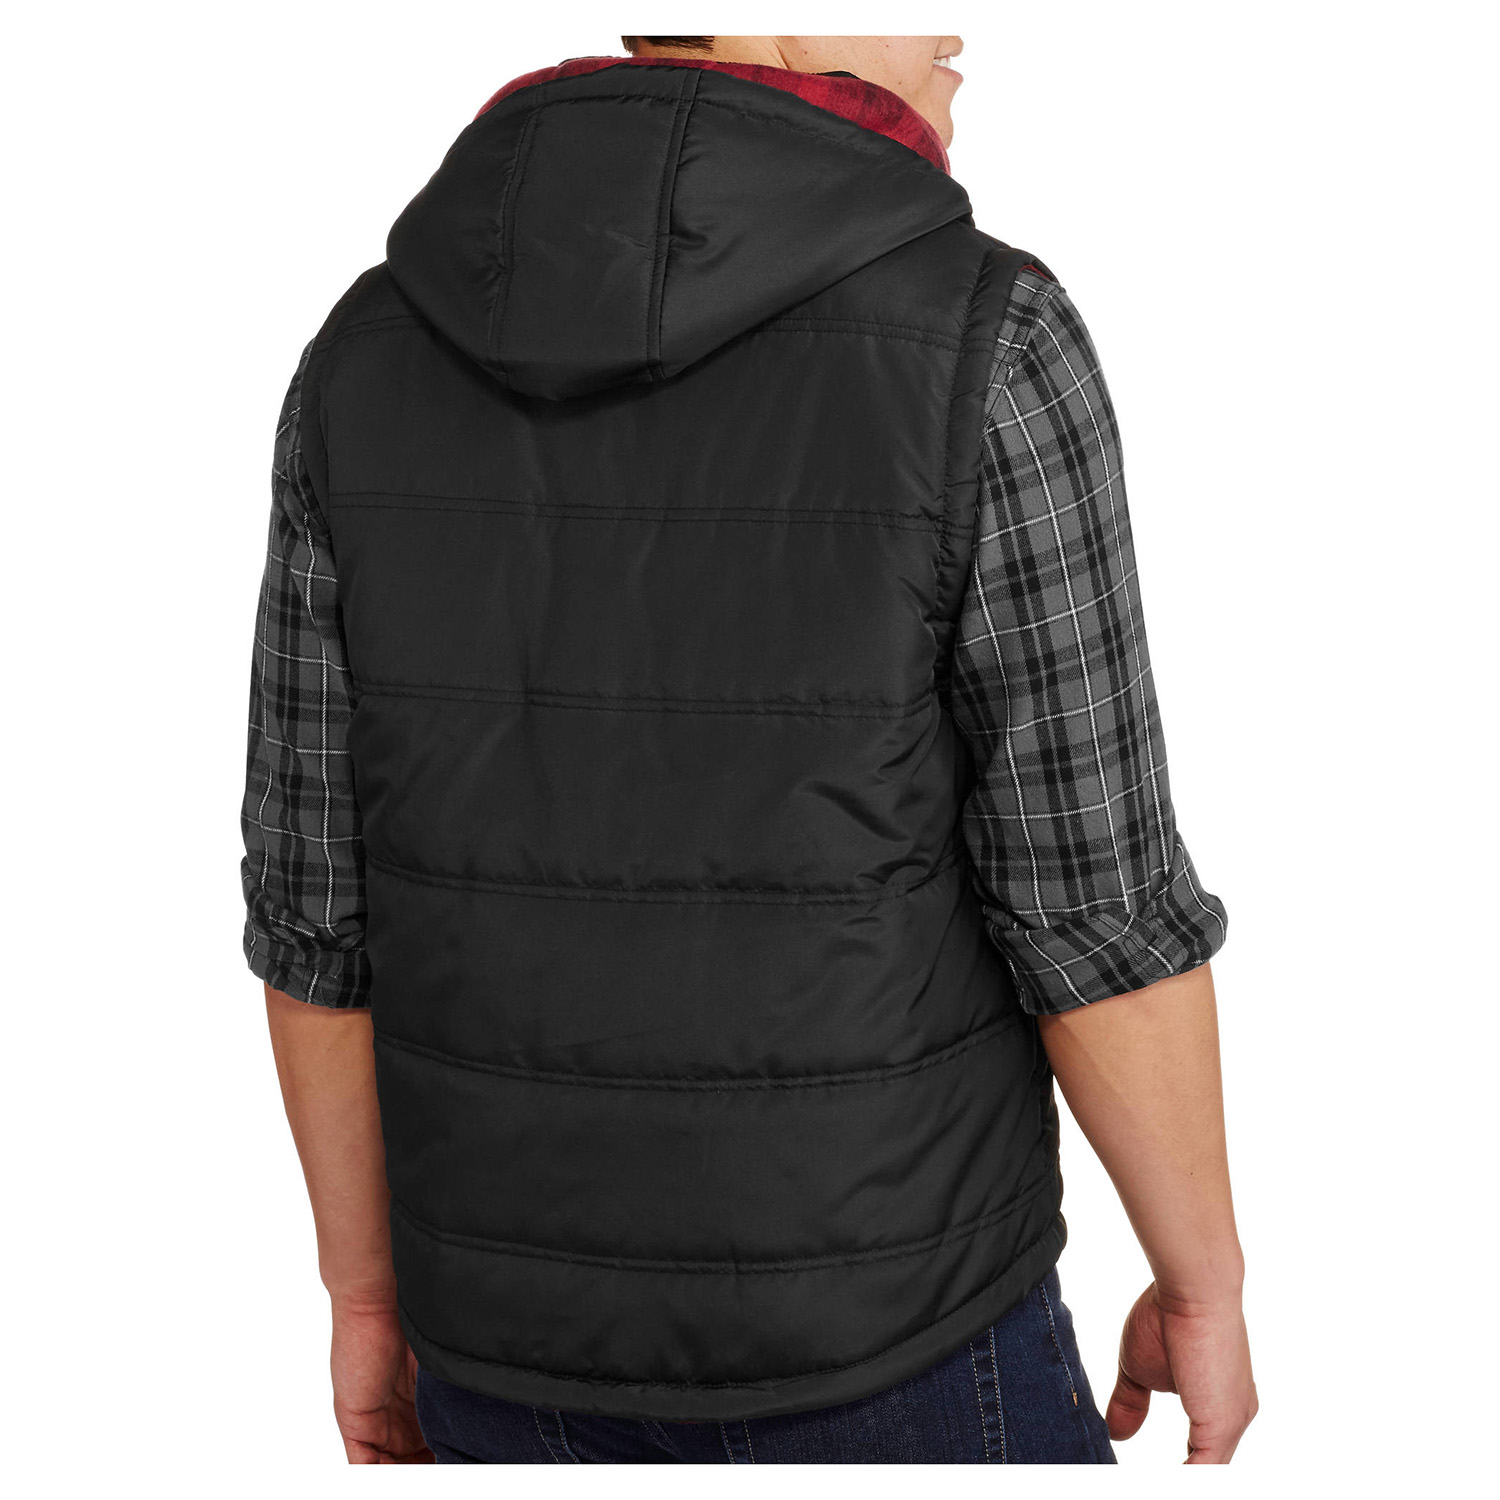 thumbnail 4 - Alta-Men-039-s-Reversible-Puffer-Zip-Up-Vest-with-Removable-Hoodie-Plaid-Jacket